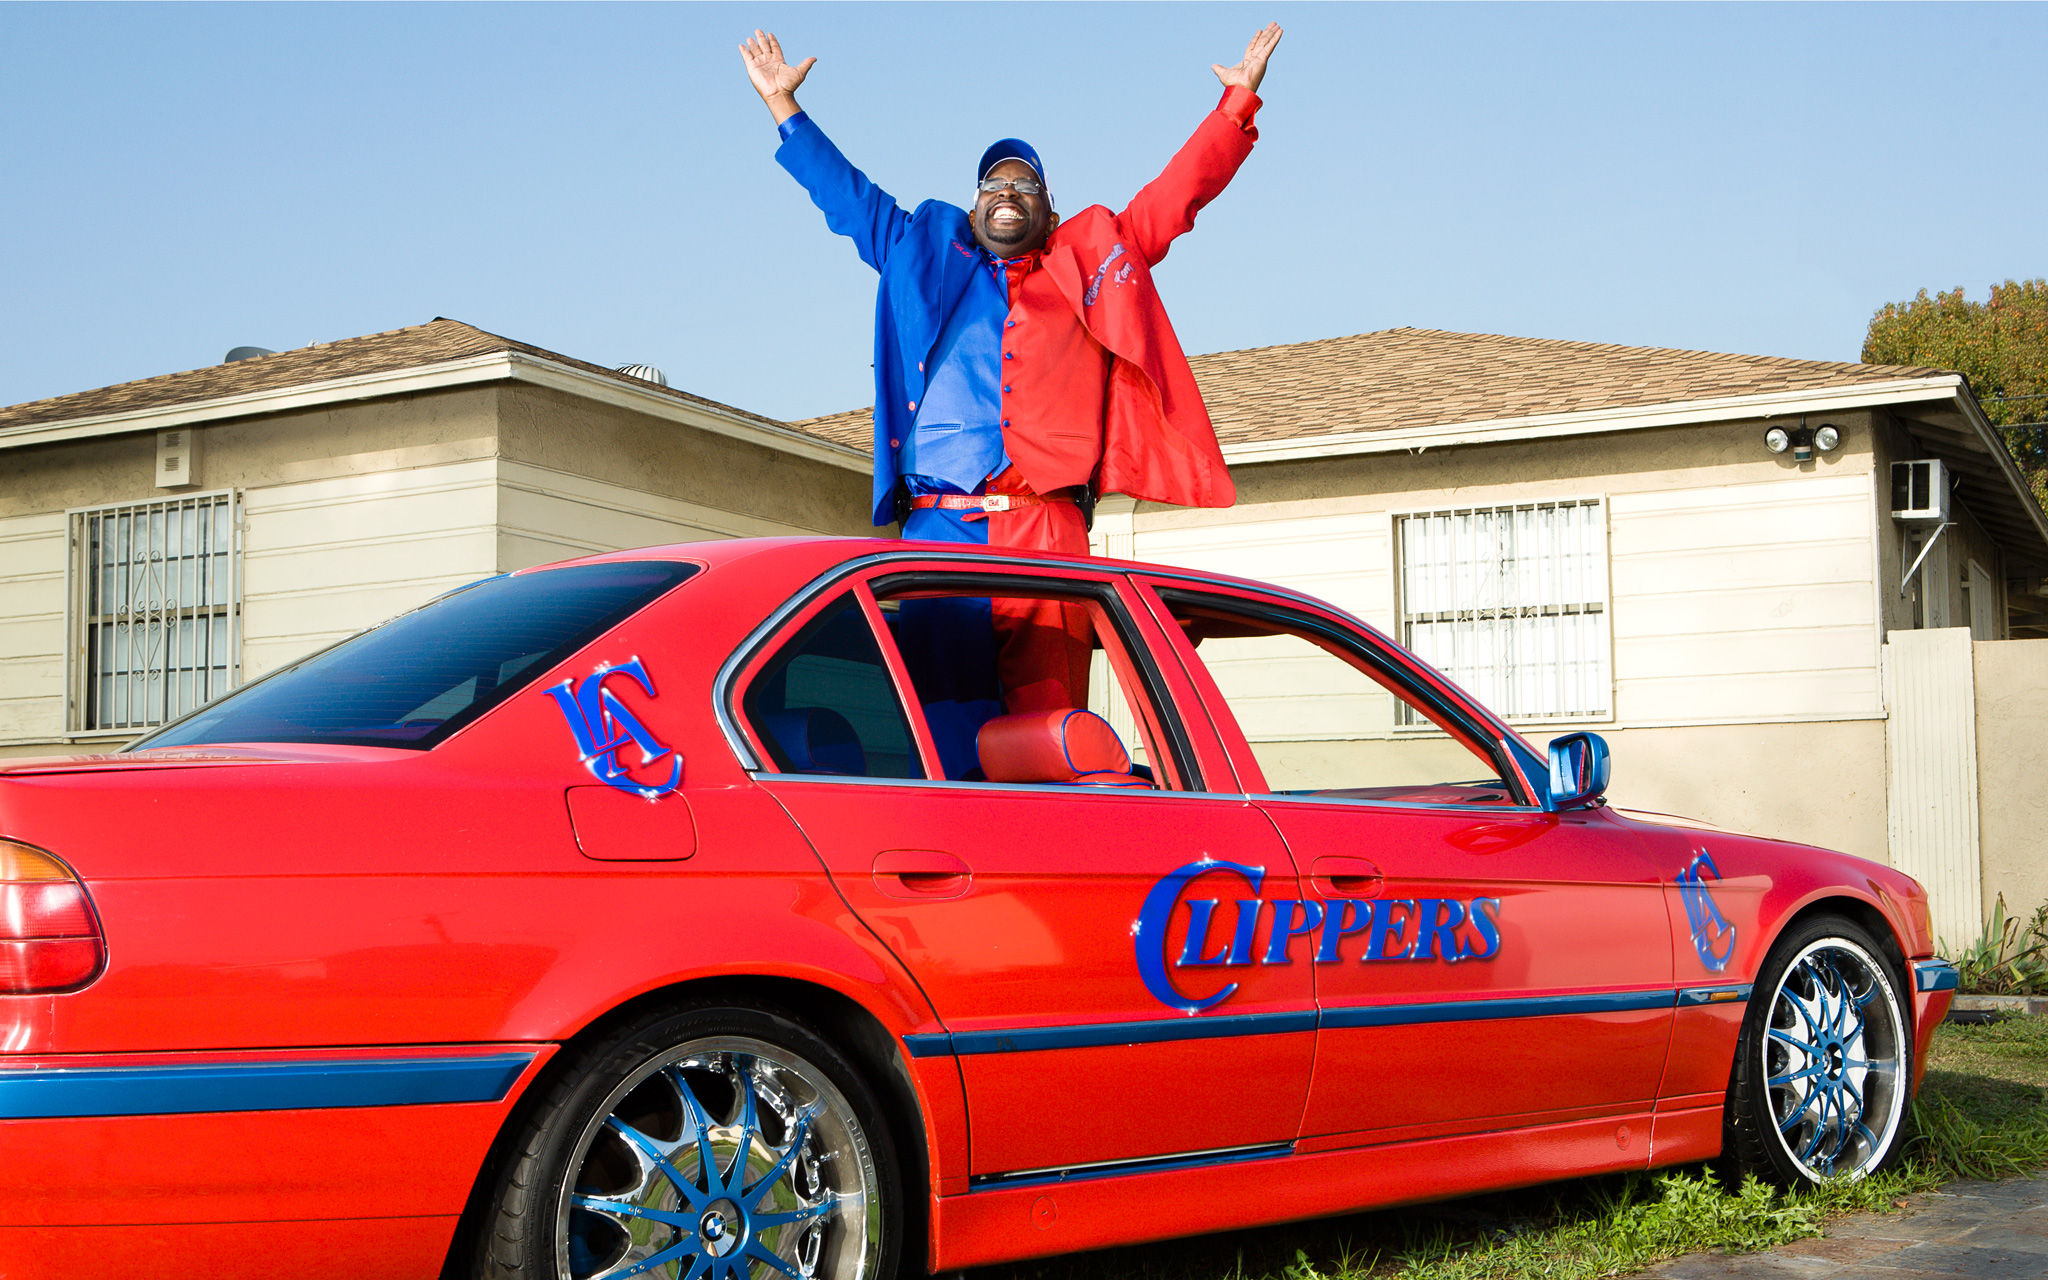 nba clipper darell daryl funny car fans super